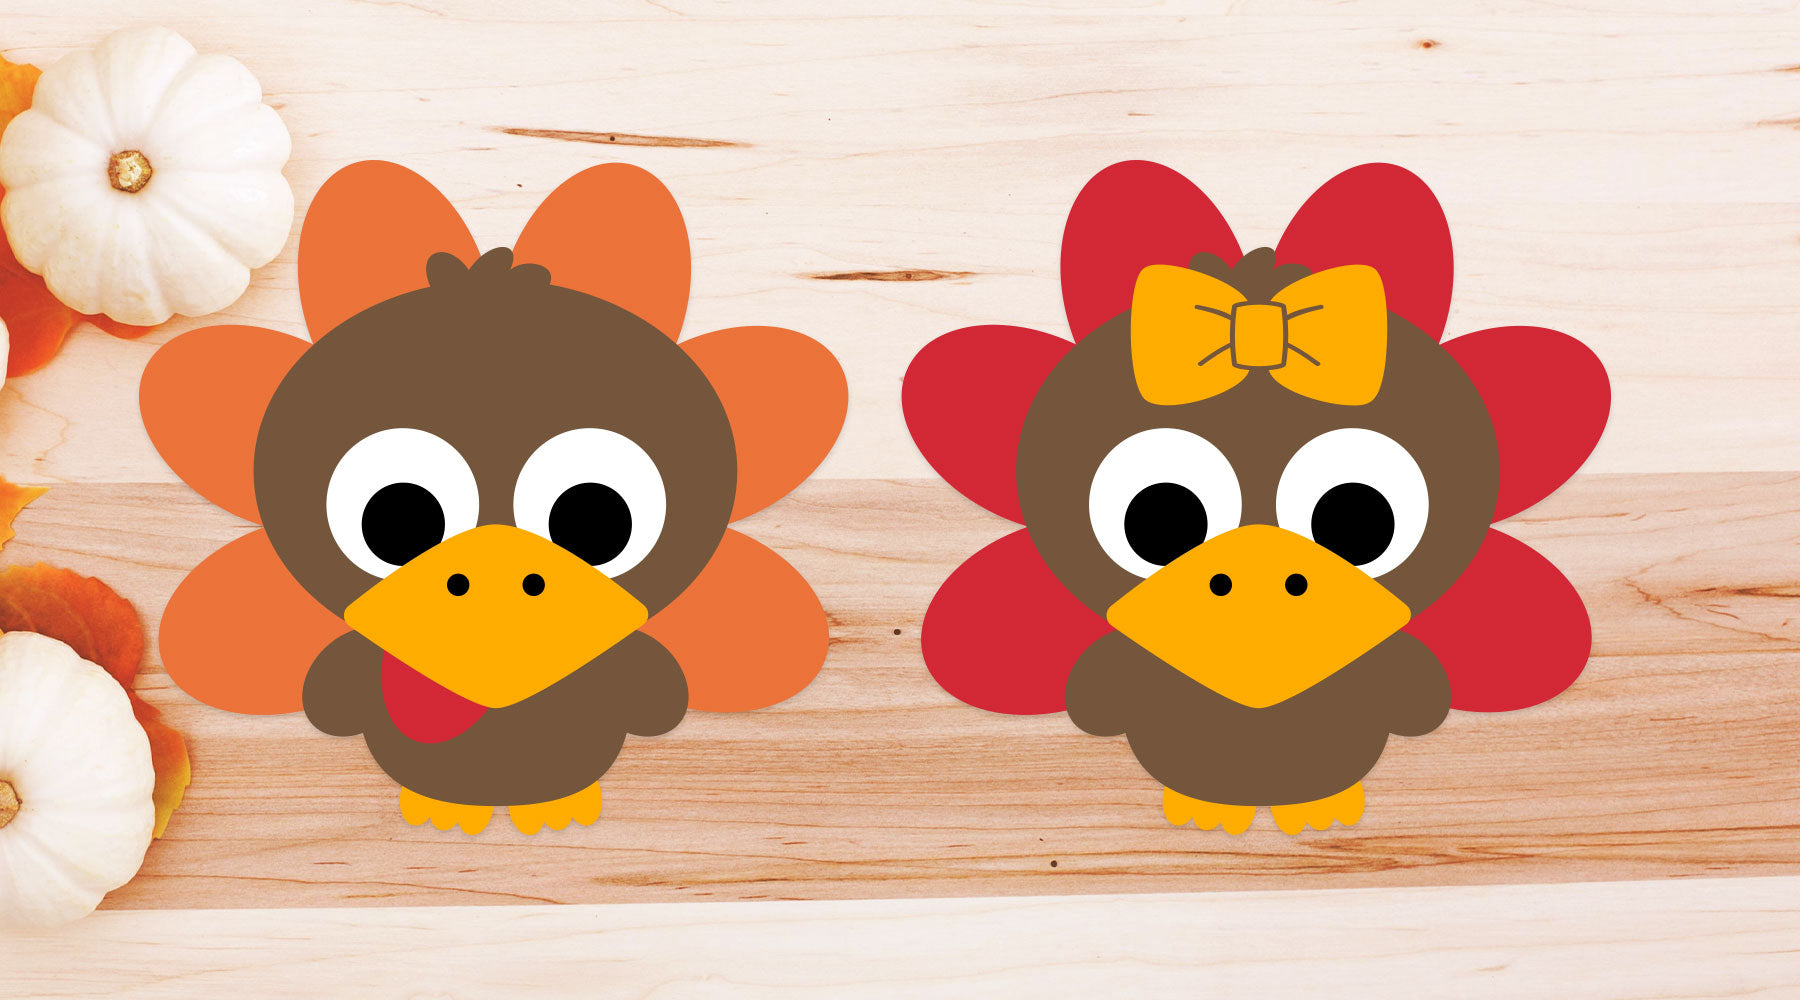 Cute Turkey Characters for Children's Thanksgiving Shirts | SVG DXF EPS PNG Cut Files | Free for Personal Use